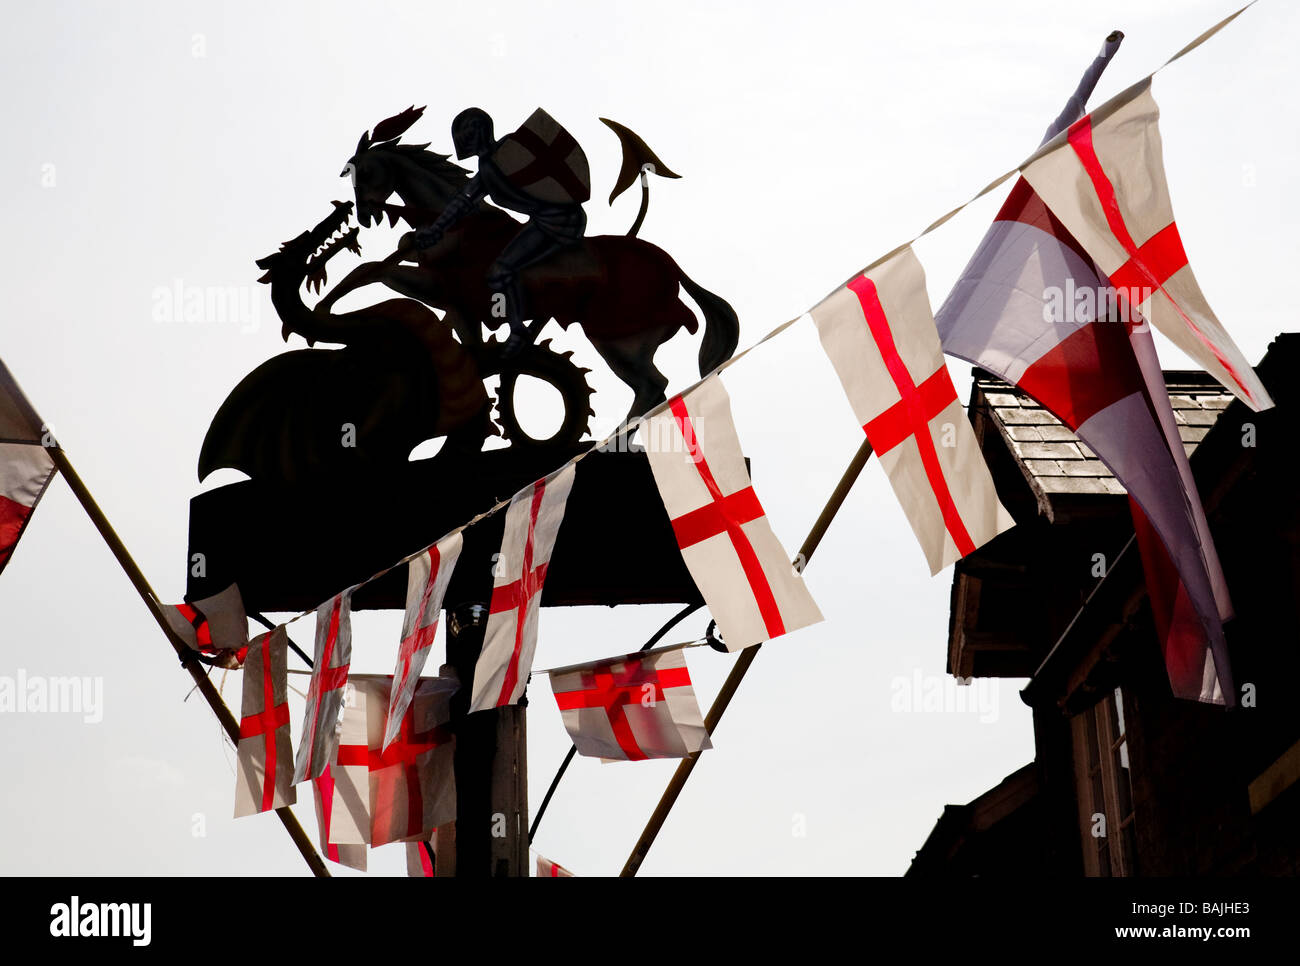 The George and Dragon pub sign, and flags of St George on St Georges Day, Snailwell, Cambridgeshire, UK - Stock Image